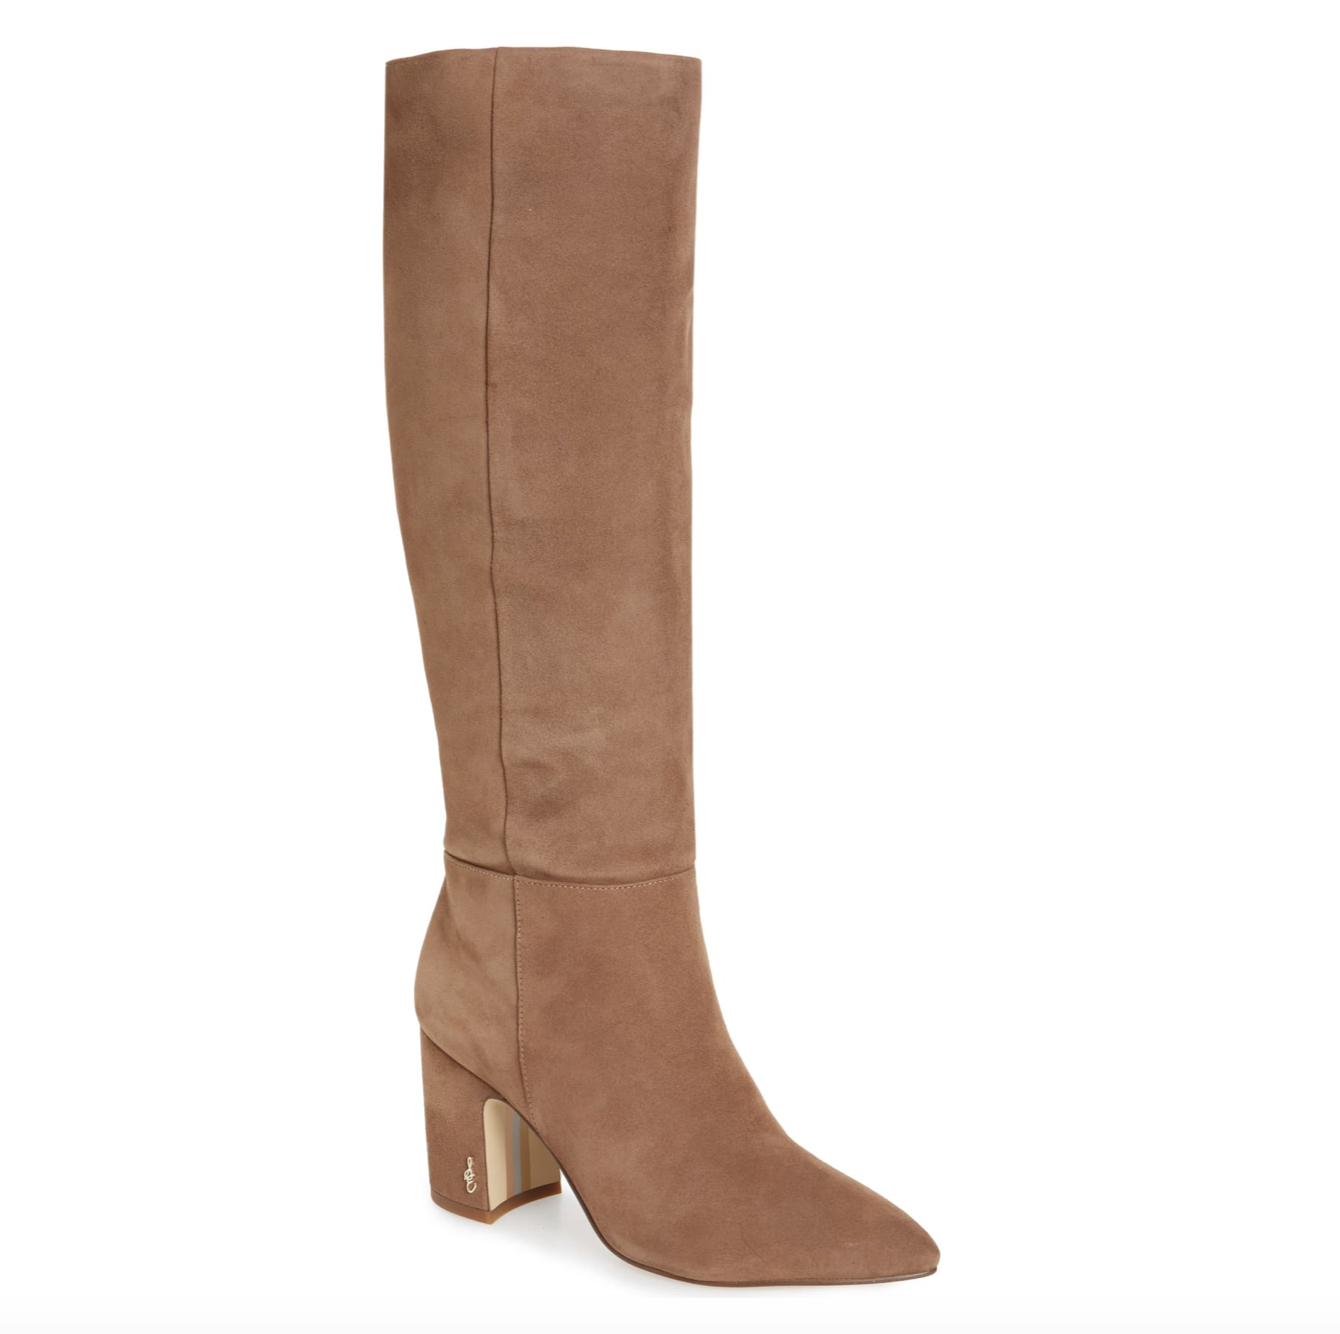 Camel Knee-High Boots | Nordstrom Anniversary Sale 2019 | A Demure Life Fashion Blog